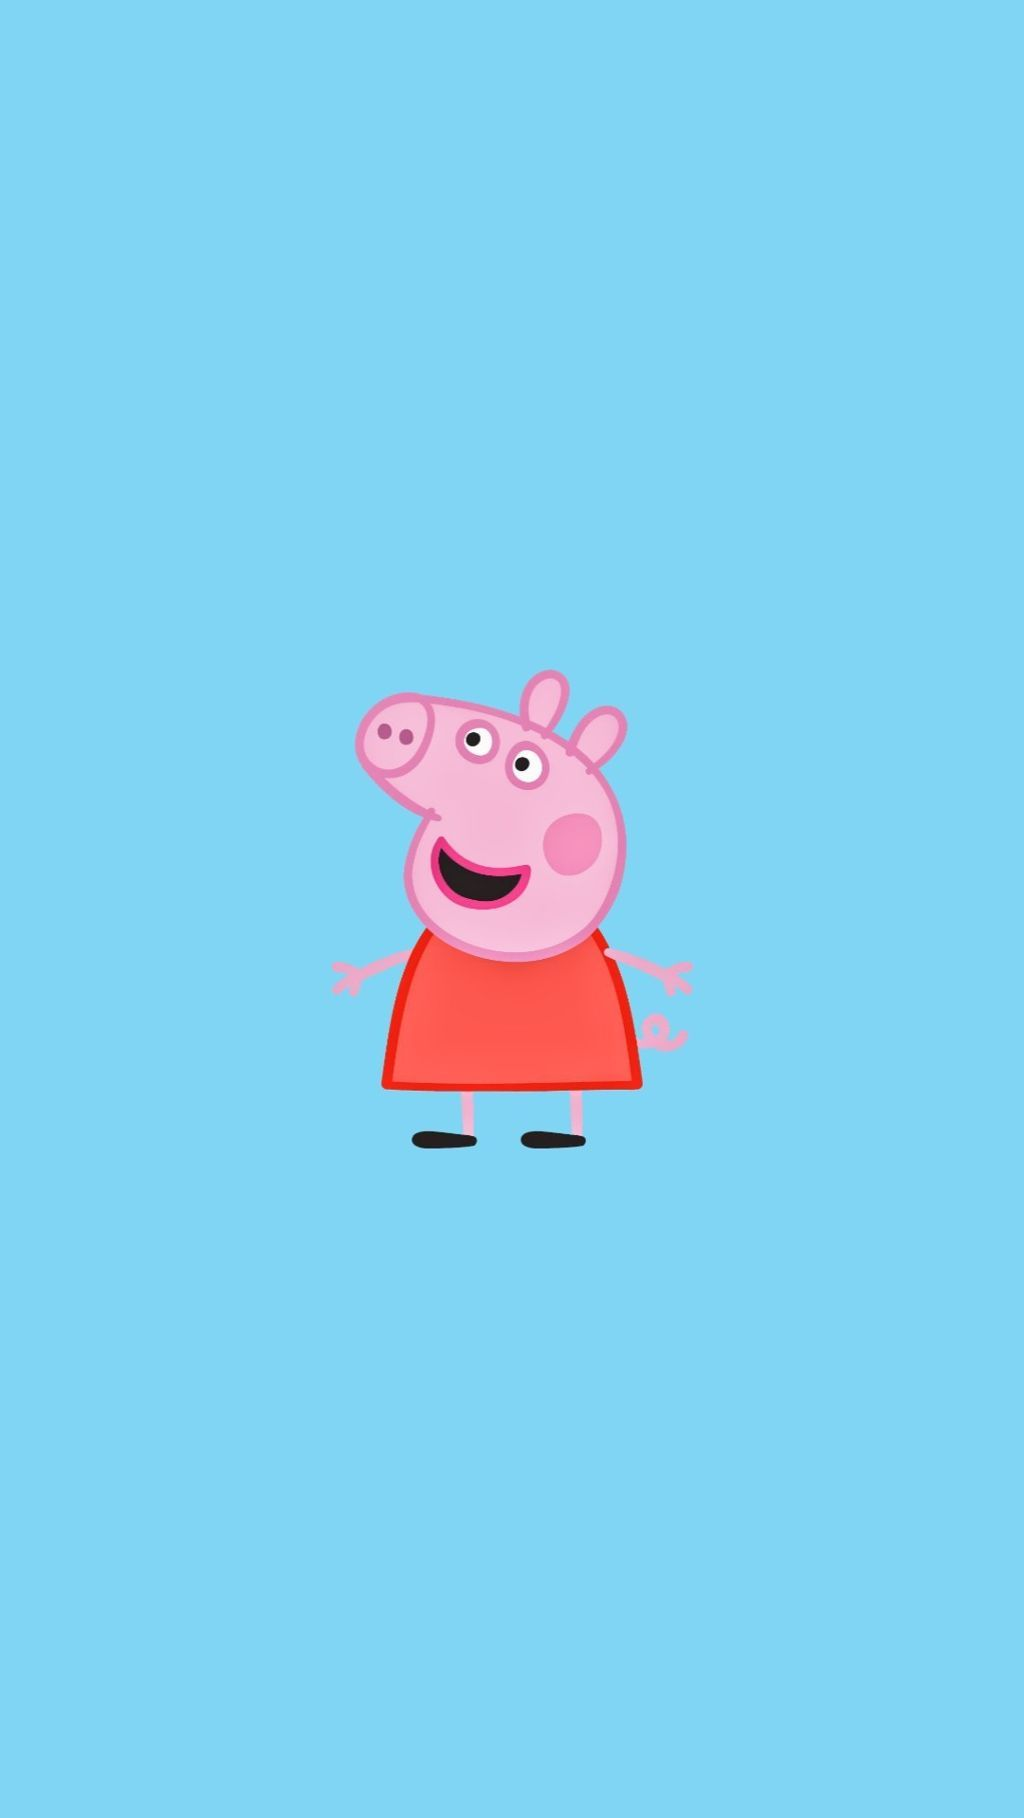 Pin By Viv The Man On Phone Backgrounds Peppa Pig Wallpaper Pig Wallpaper Cartoon Wallpaper Iphone